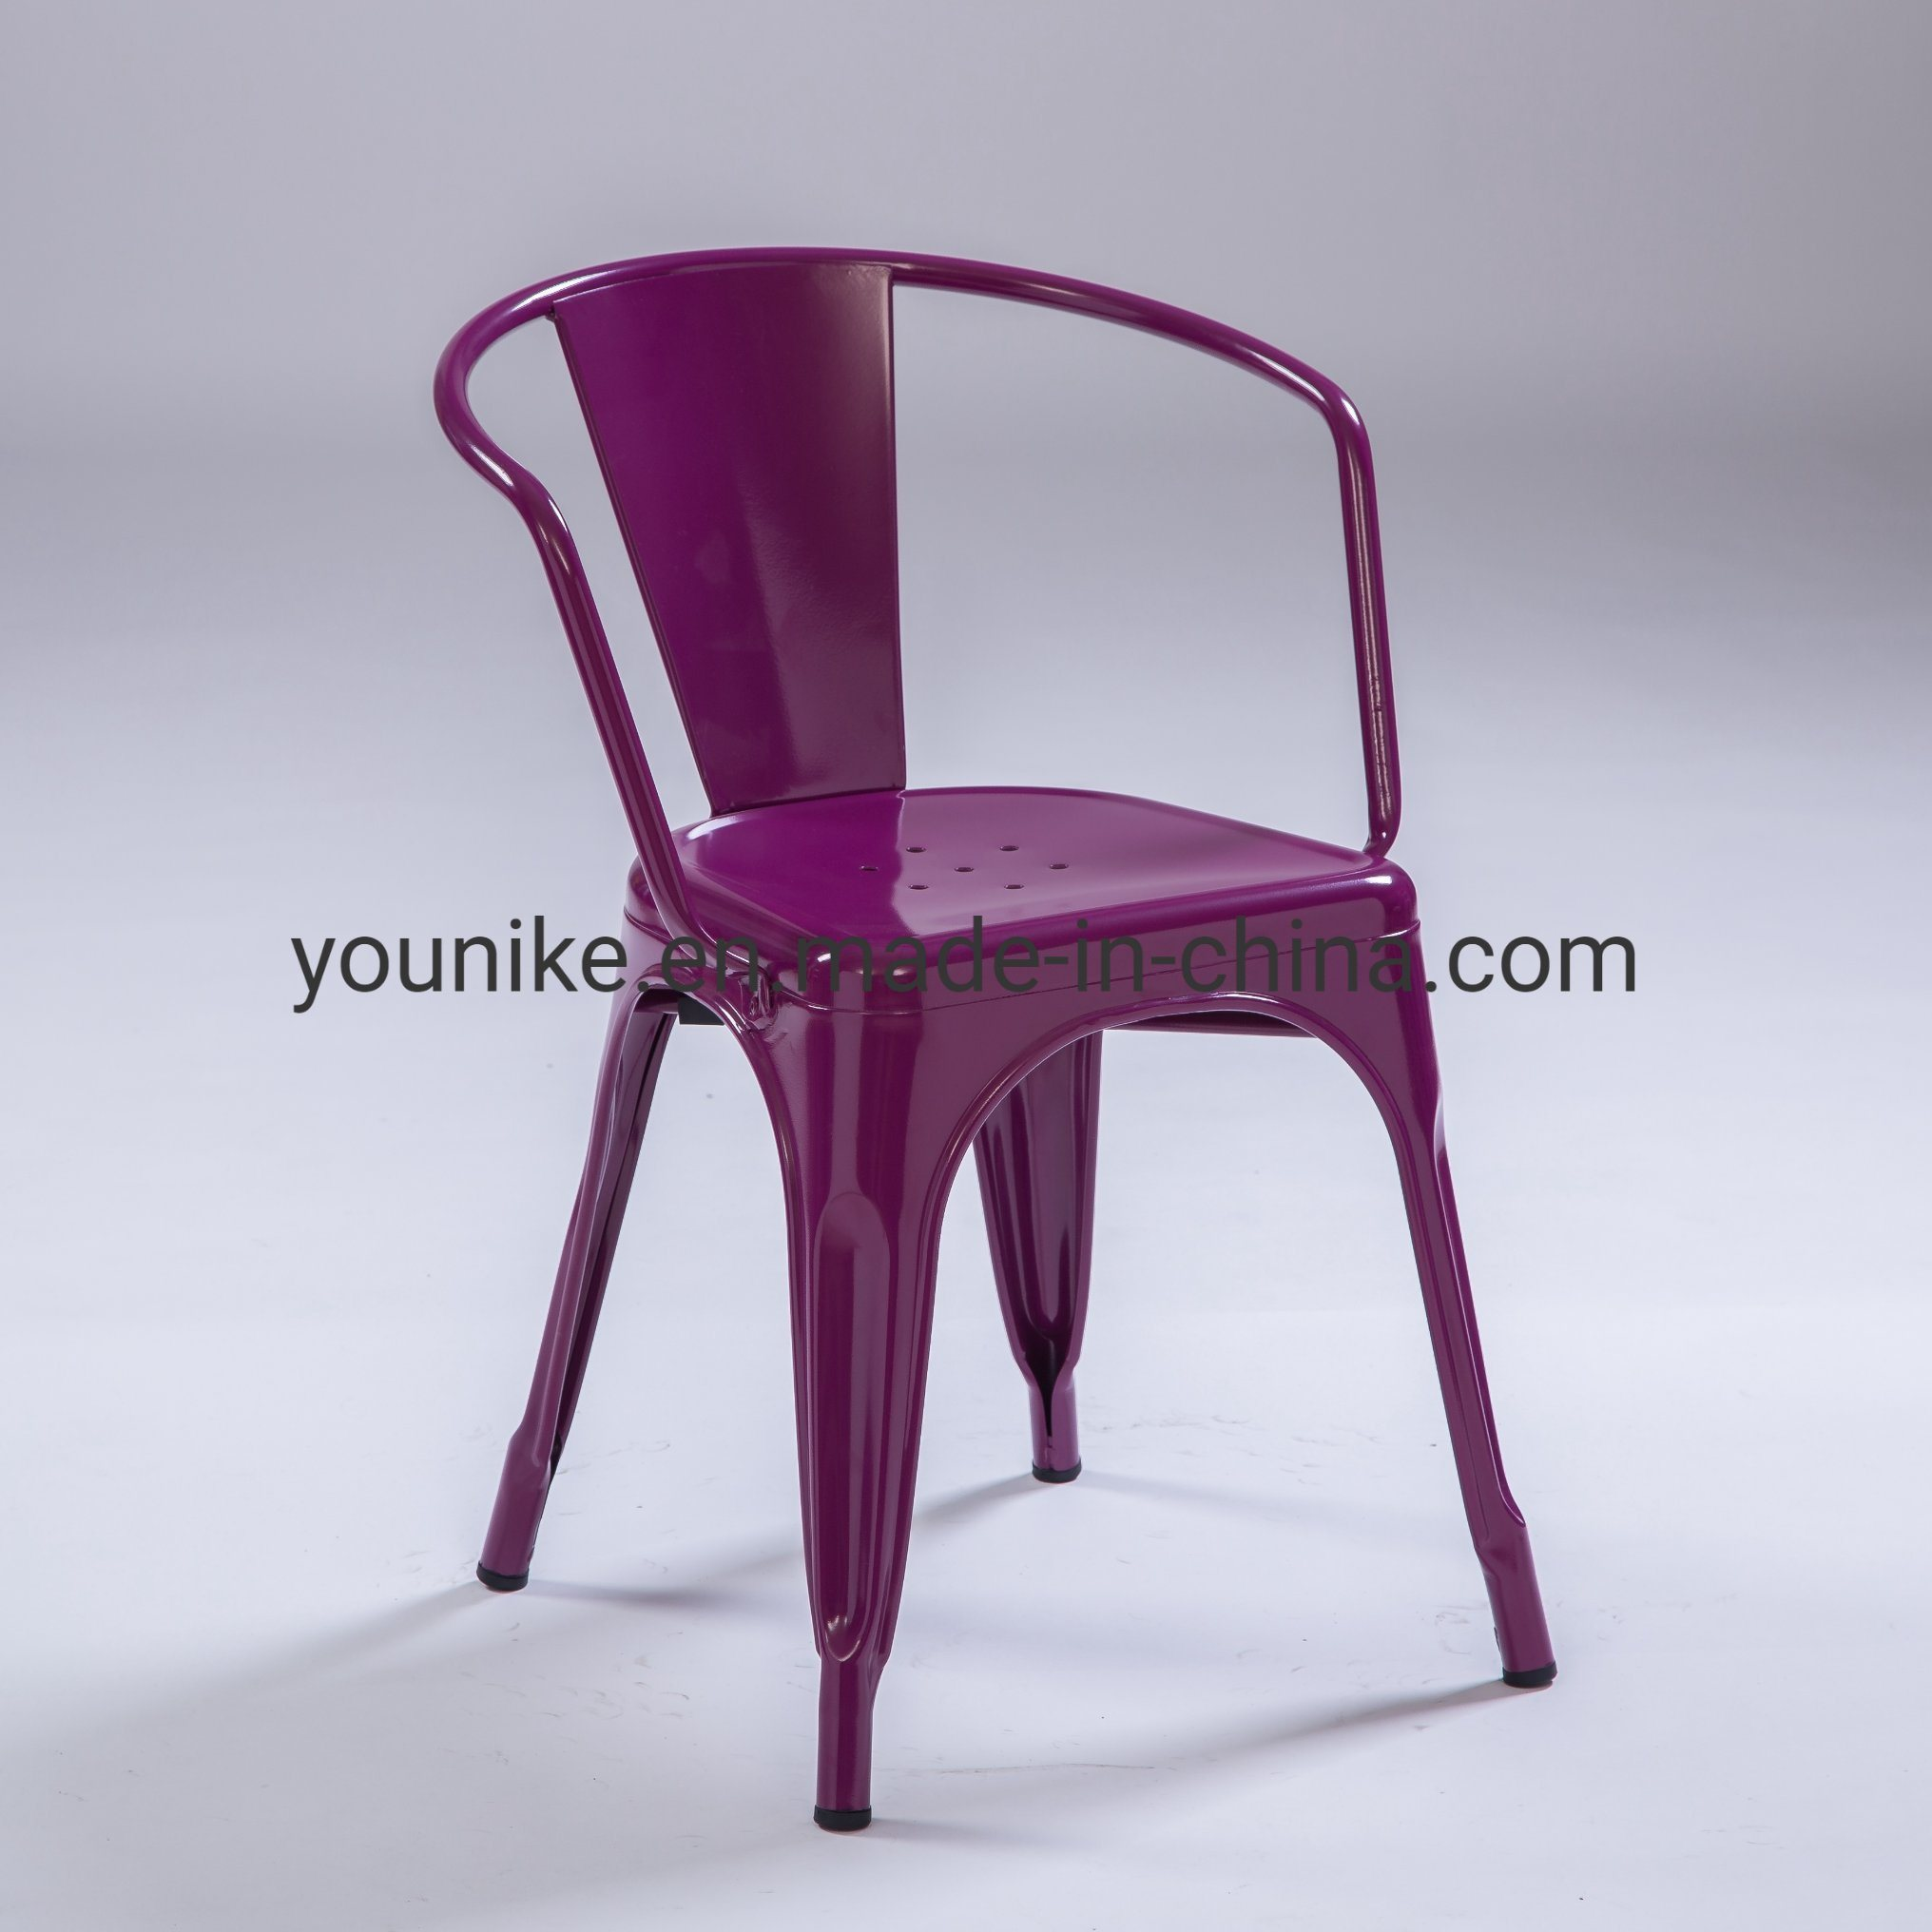 China Industrial Tolix Armchair Vintage Armand Restaurant Outdoor Indoor Colorful China Arm Tolix Chair Dining Chair